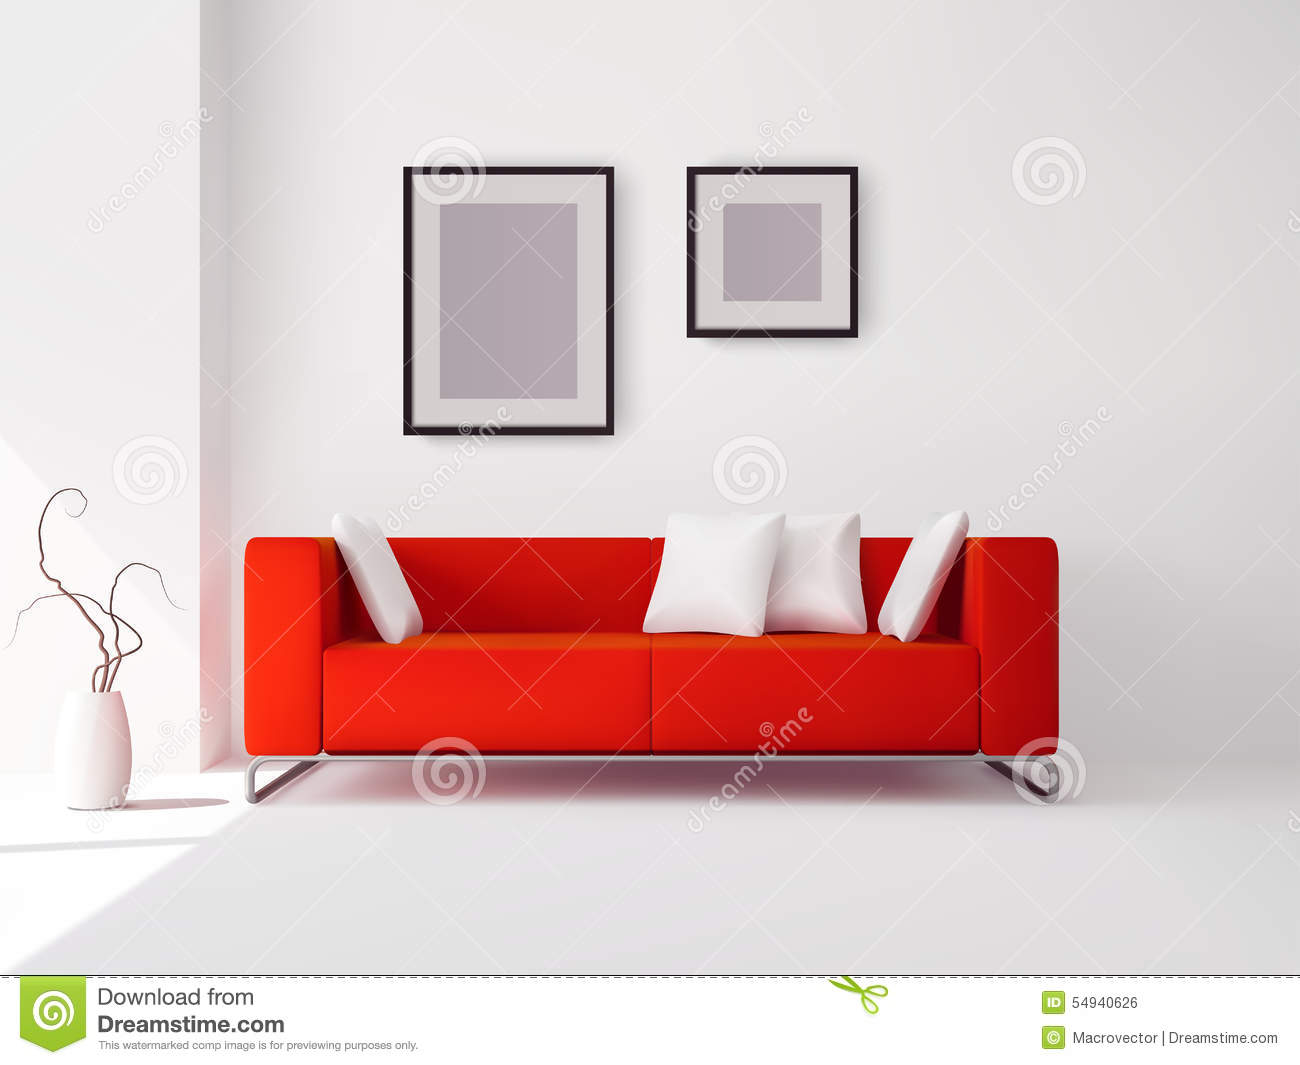 Red Sofa With Pillows And Frames Stock Vector - Illustration ...